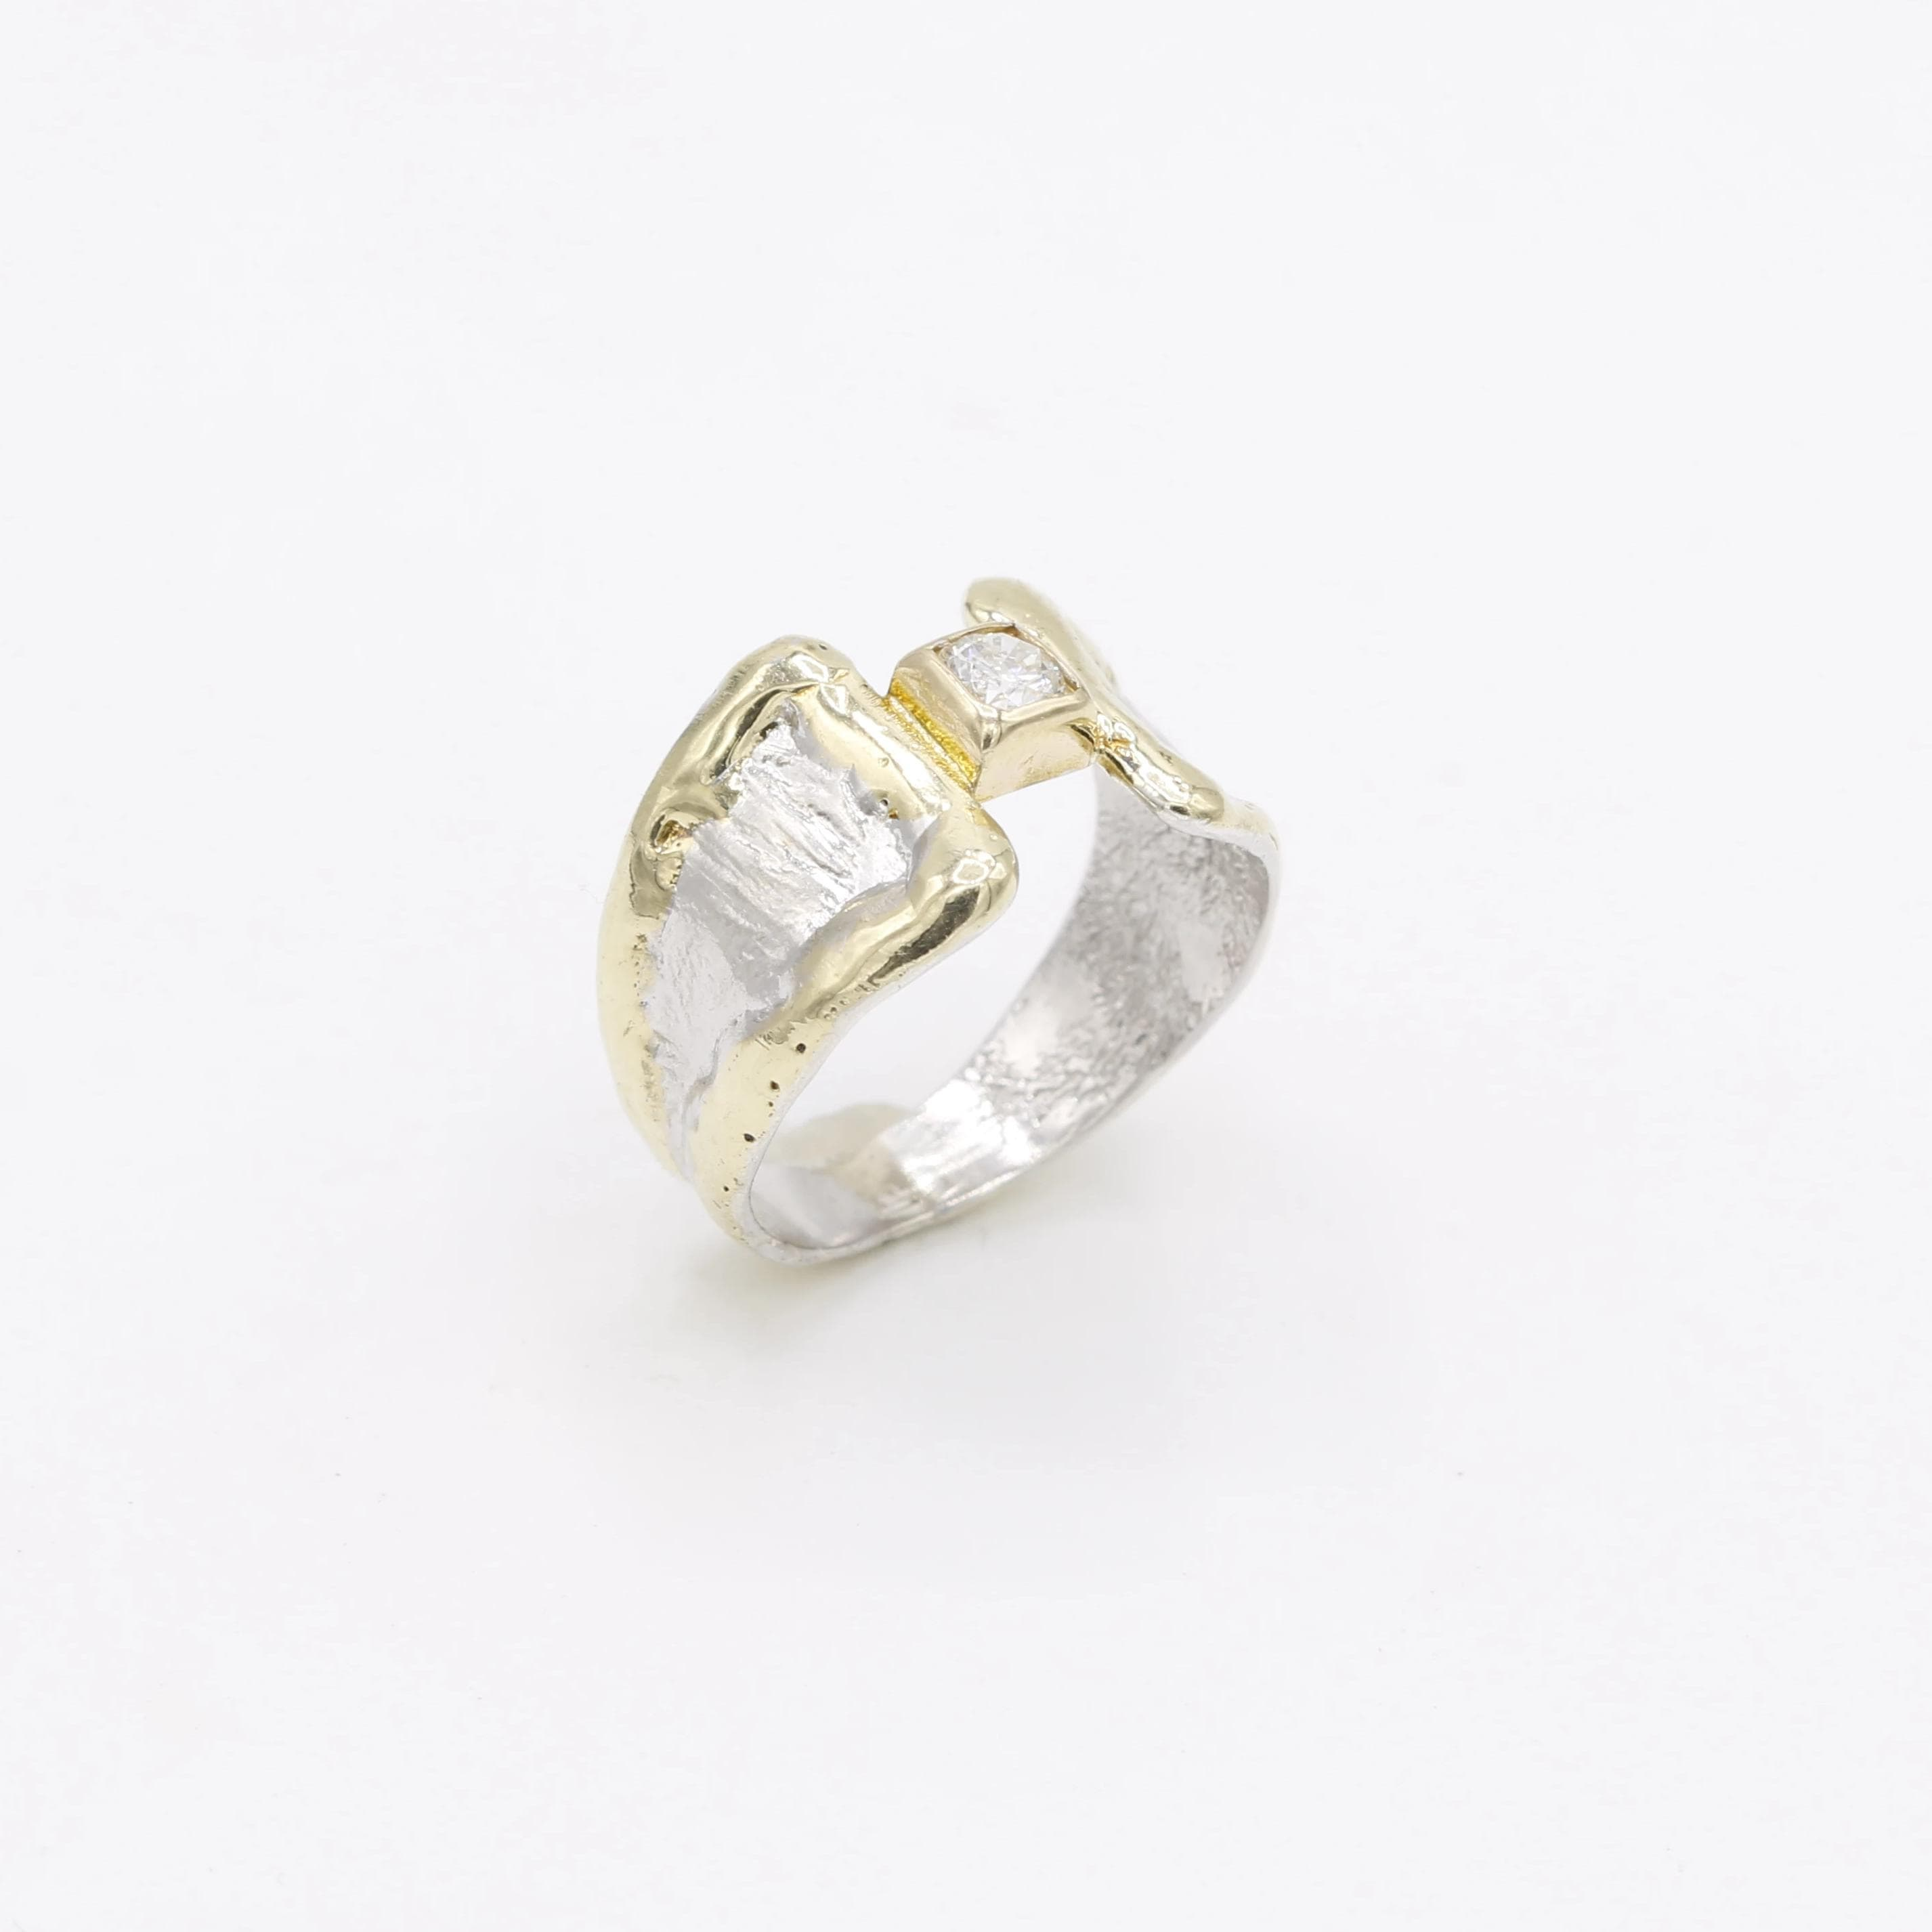 14K Gold & Crystalline Silver Diamond Ring - No Image - 30579-Fusion Designs-Renee Taylor Gallery